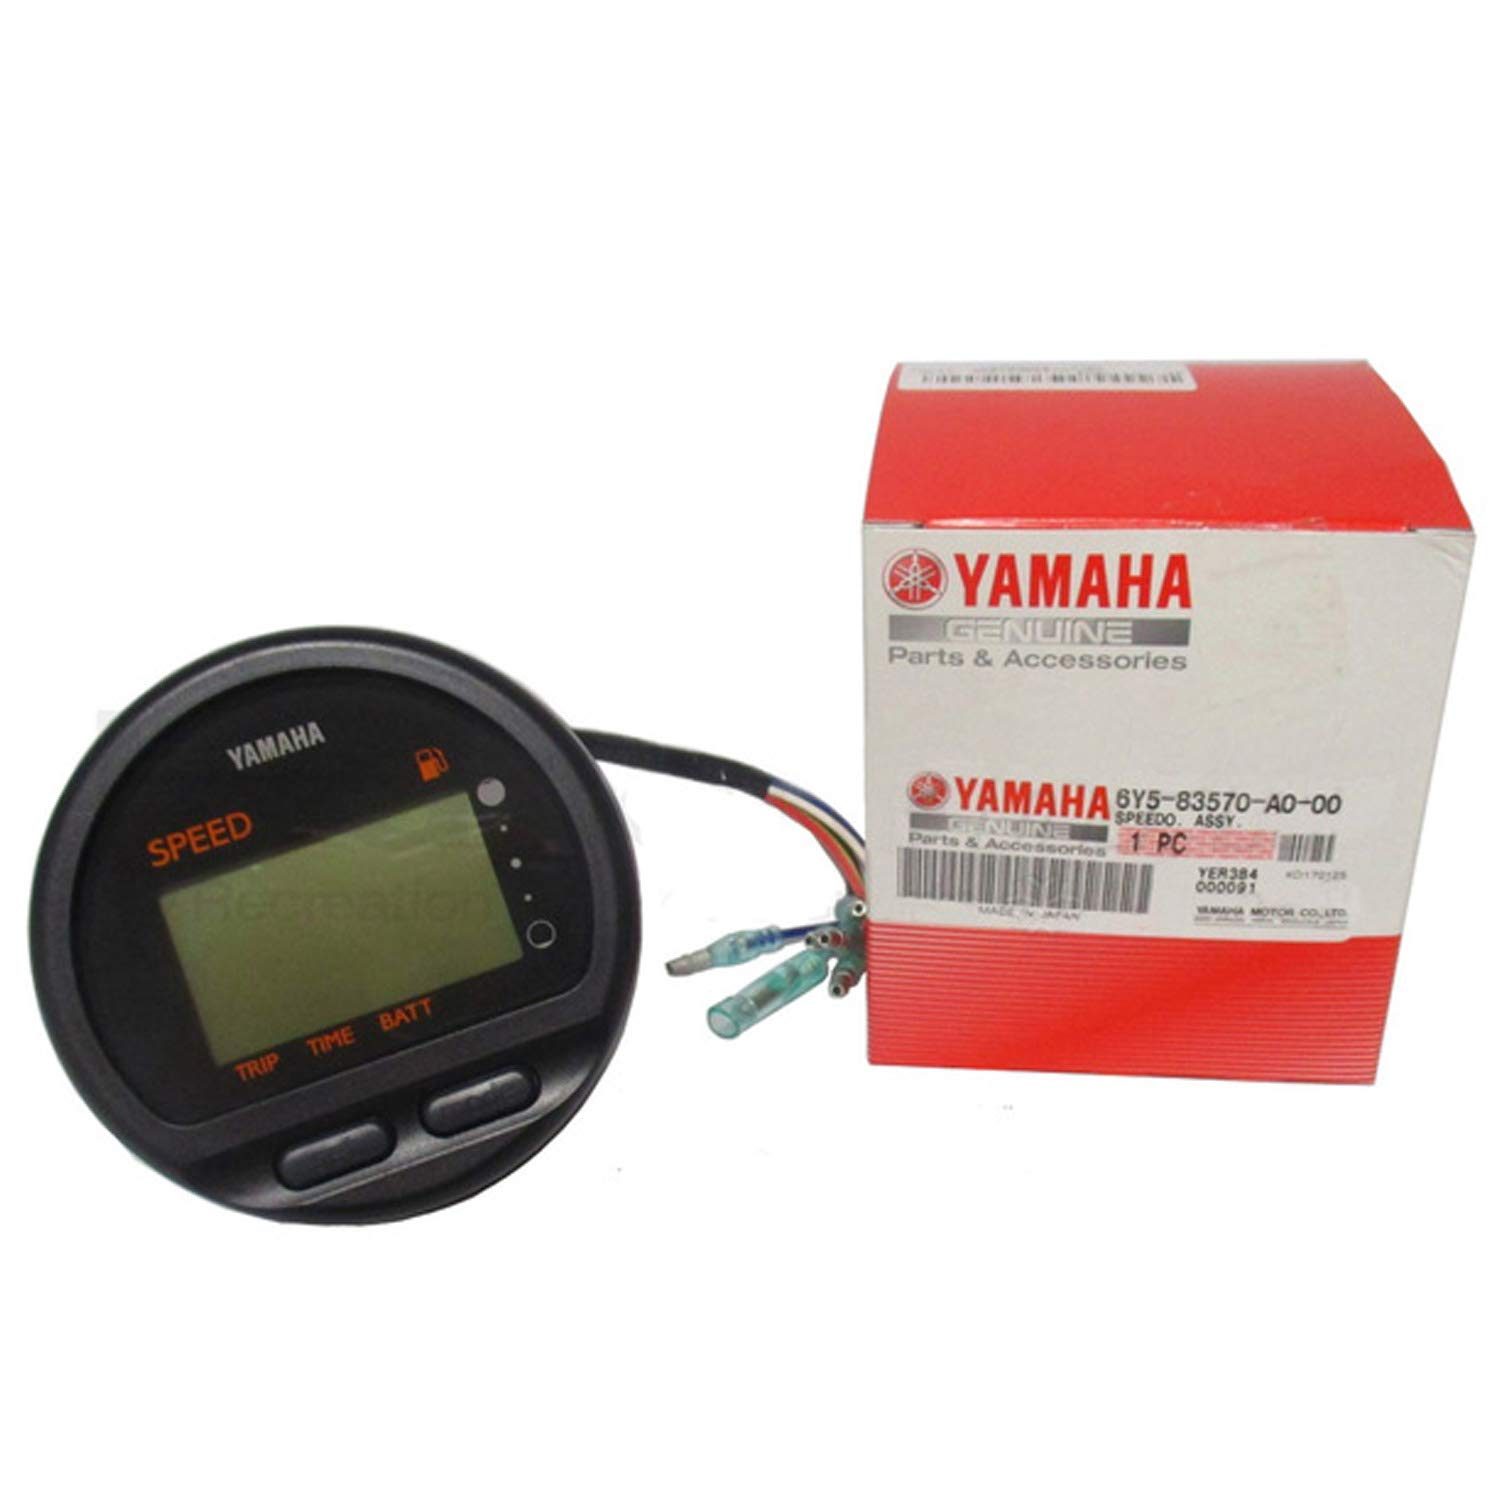 YAMAHA SPEEDOMETER ASSEMBLY OUTBOARD MOTOR 6Y5-83570-A0-00 by YAMAHA